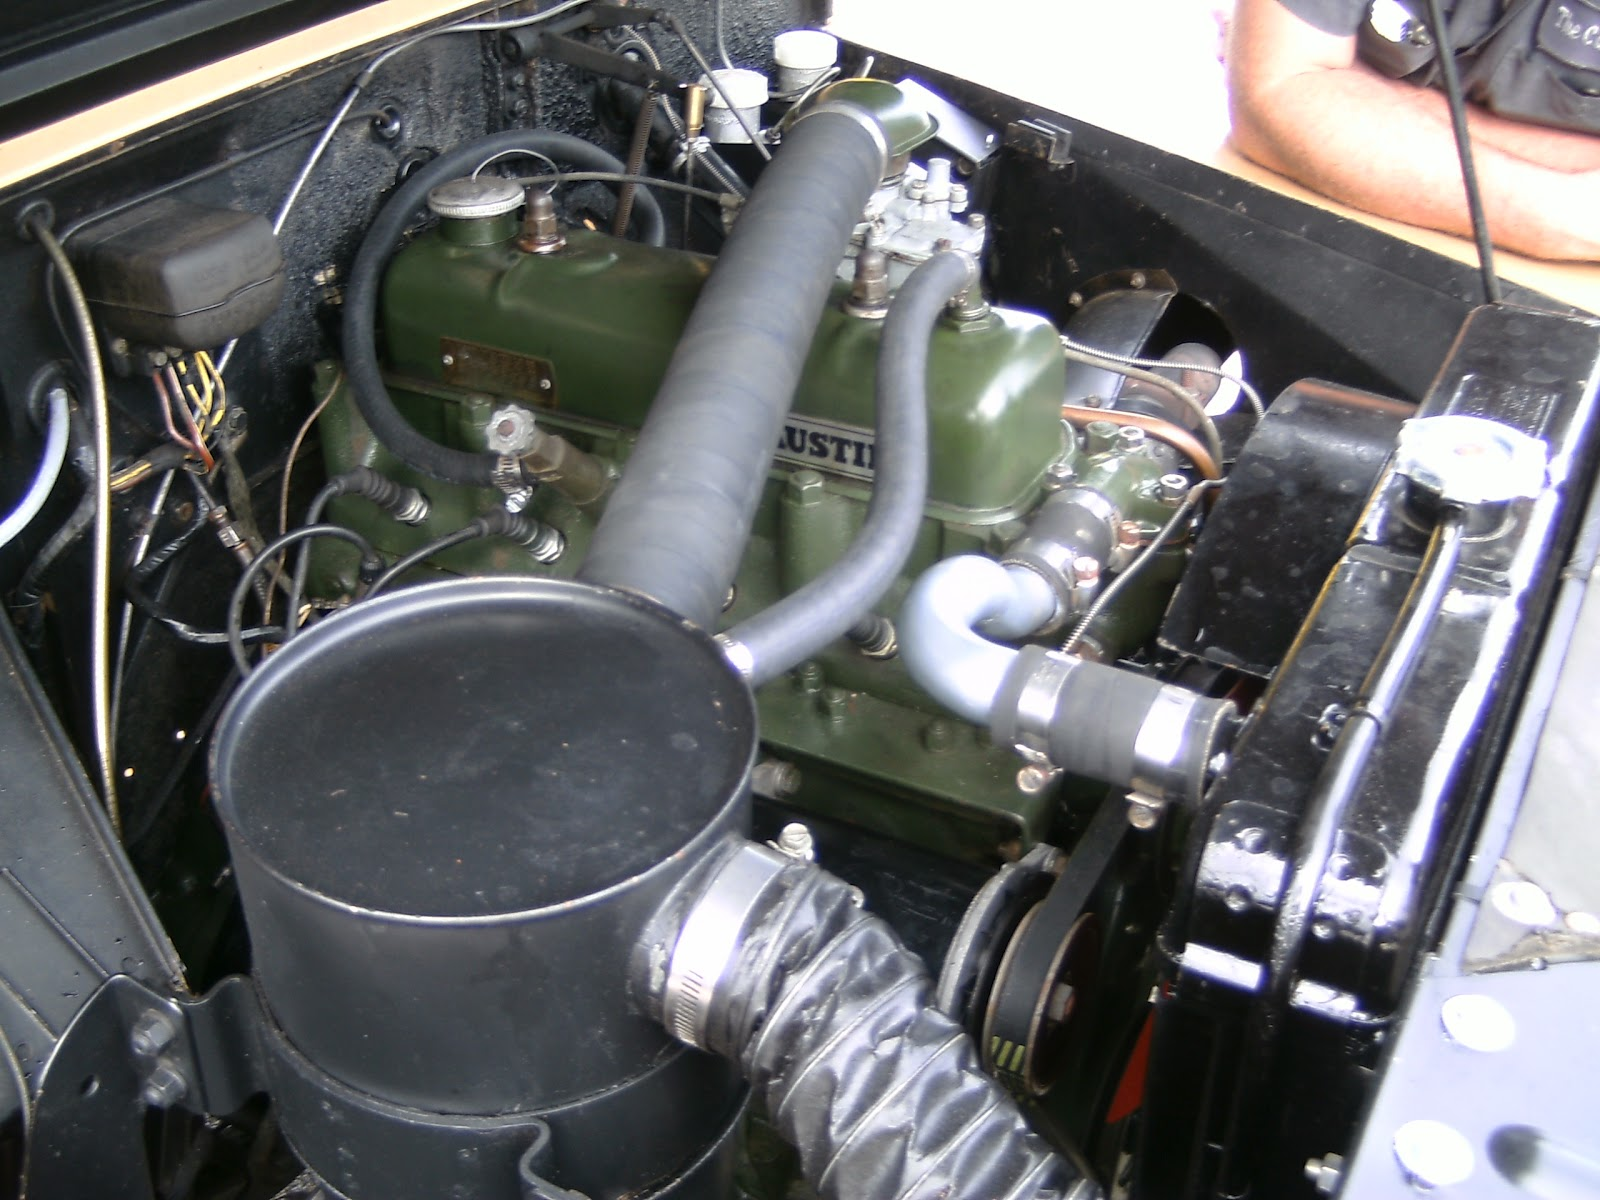 The 2,199cc Austin engine in a nicely restored Austin Gipsy. (Picture courtesy hooniverse.com).